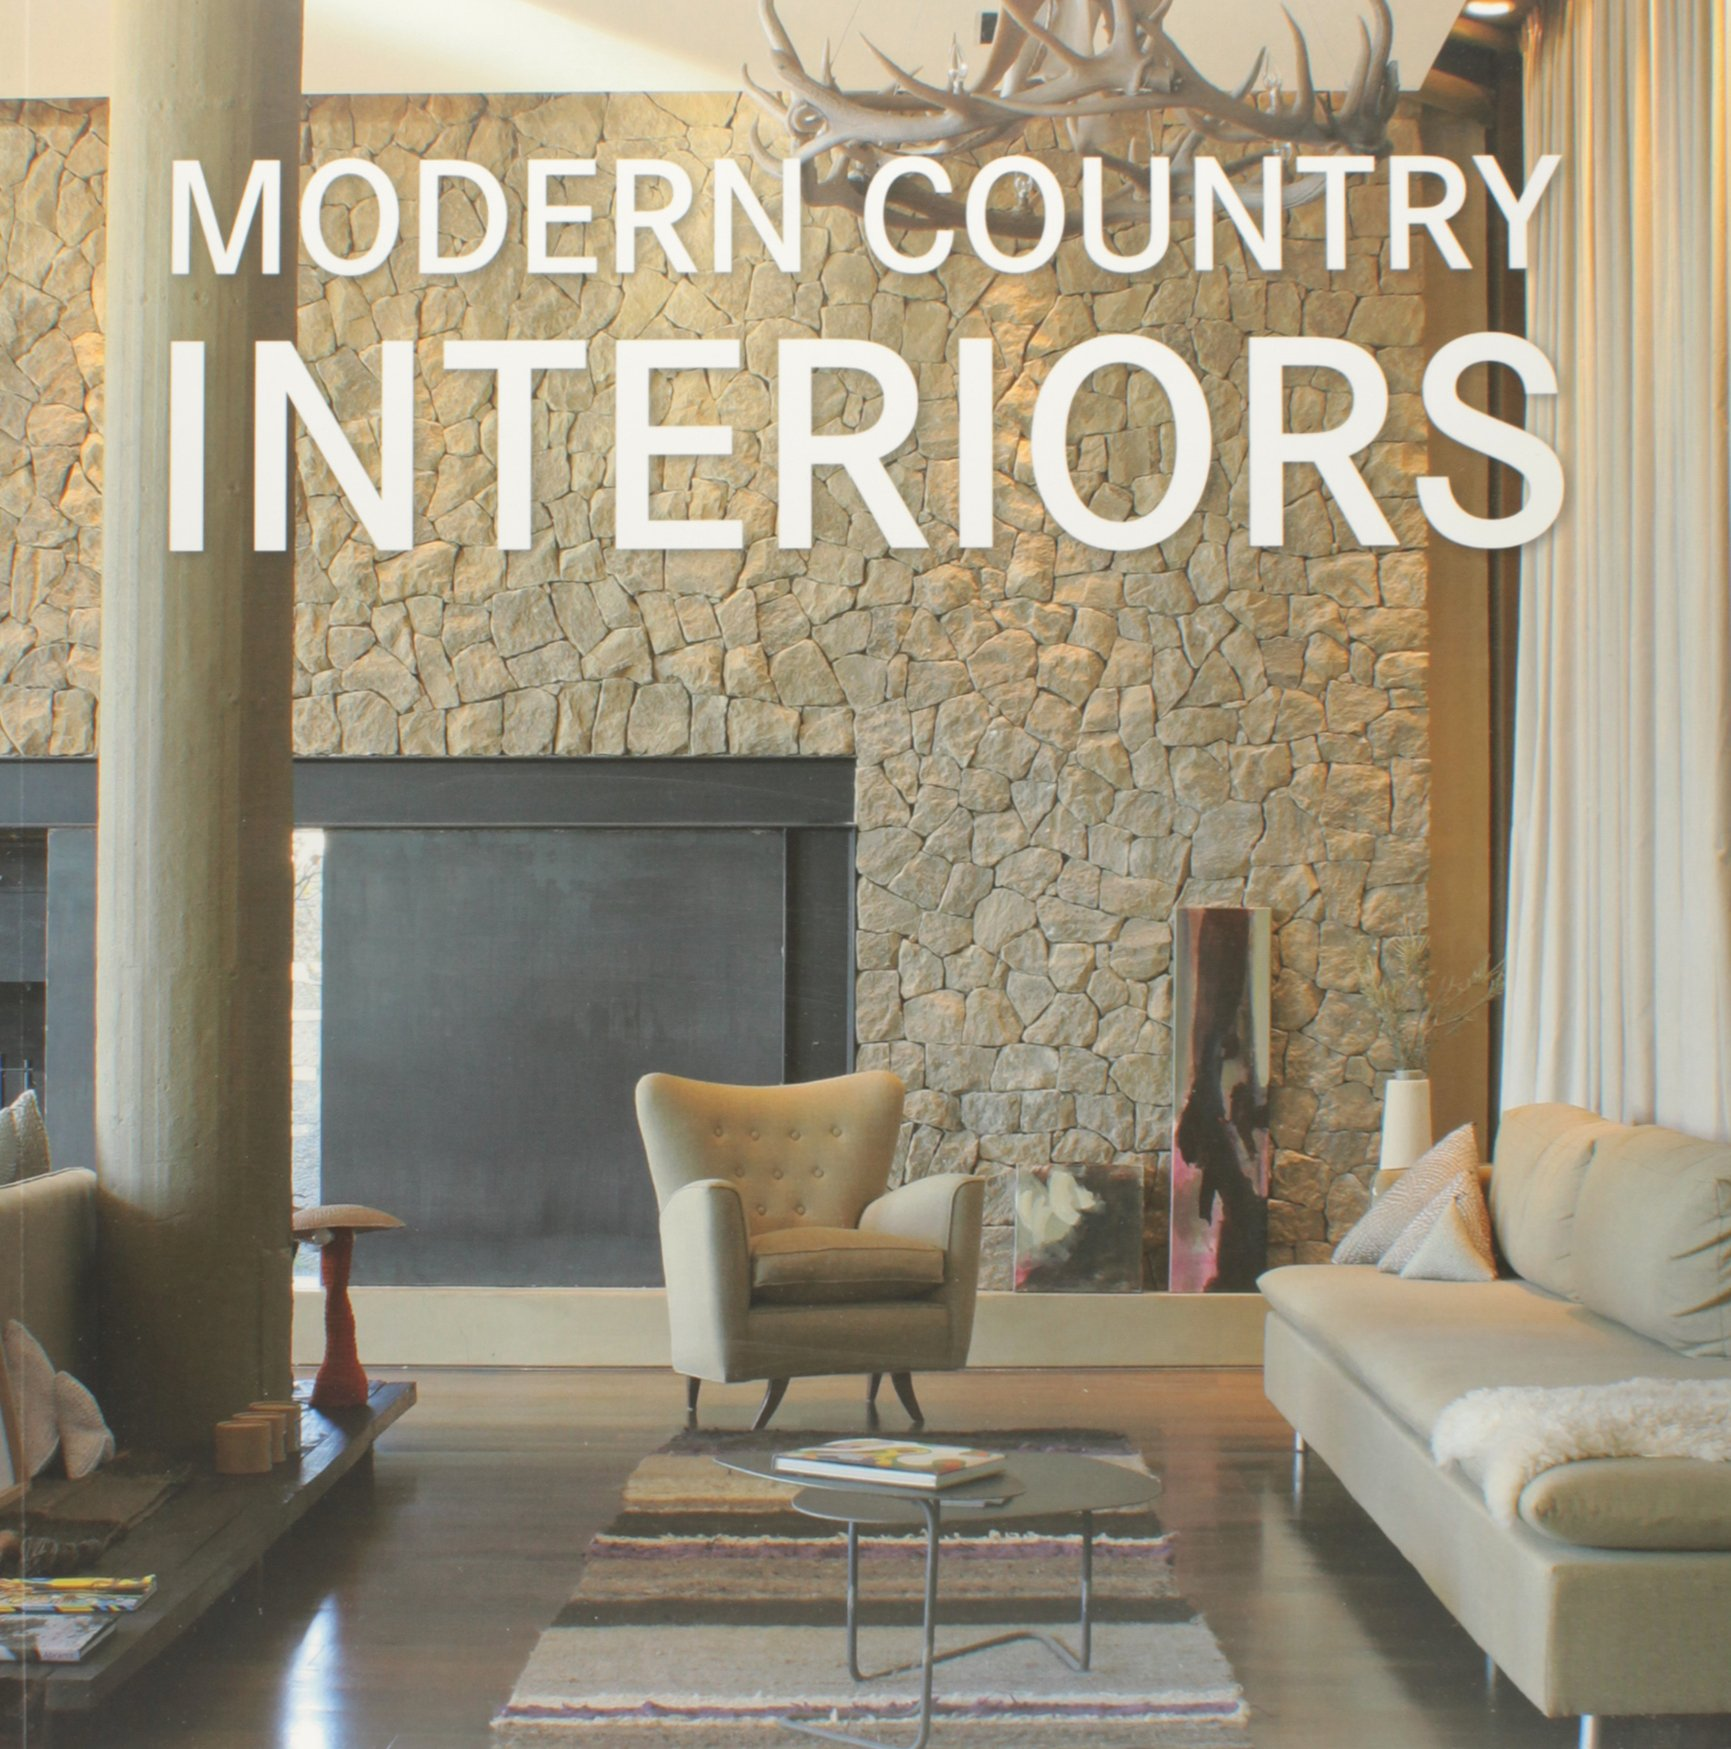 Modern Country Interiors Paperback – 20 Oct 2010